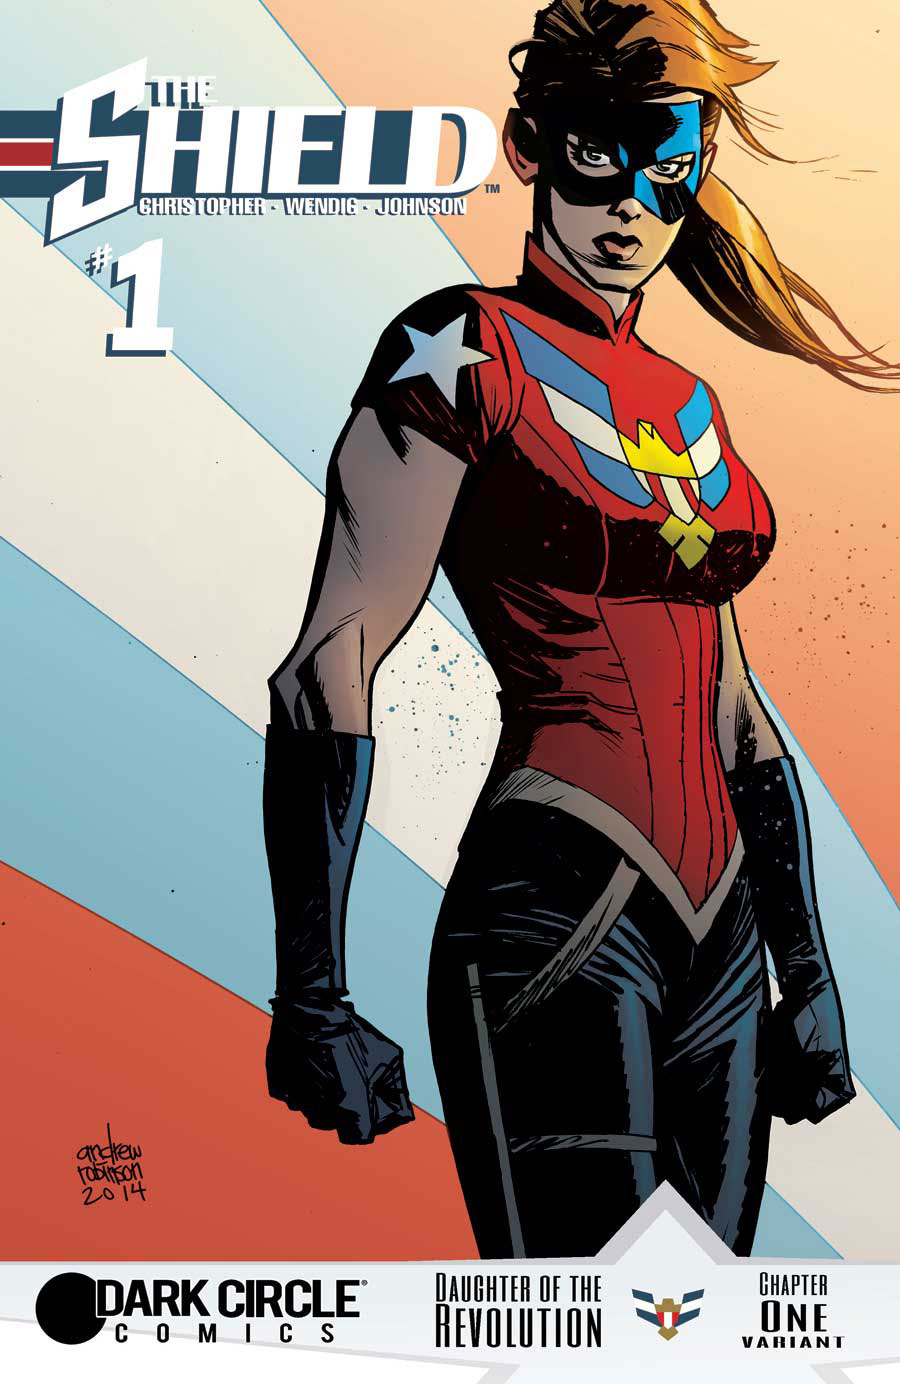 Issue #1 cover by Andrew Robinson